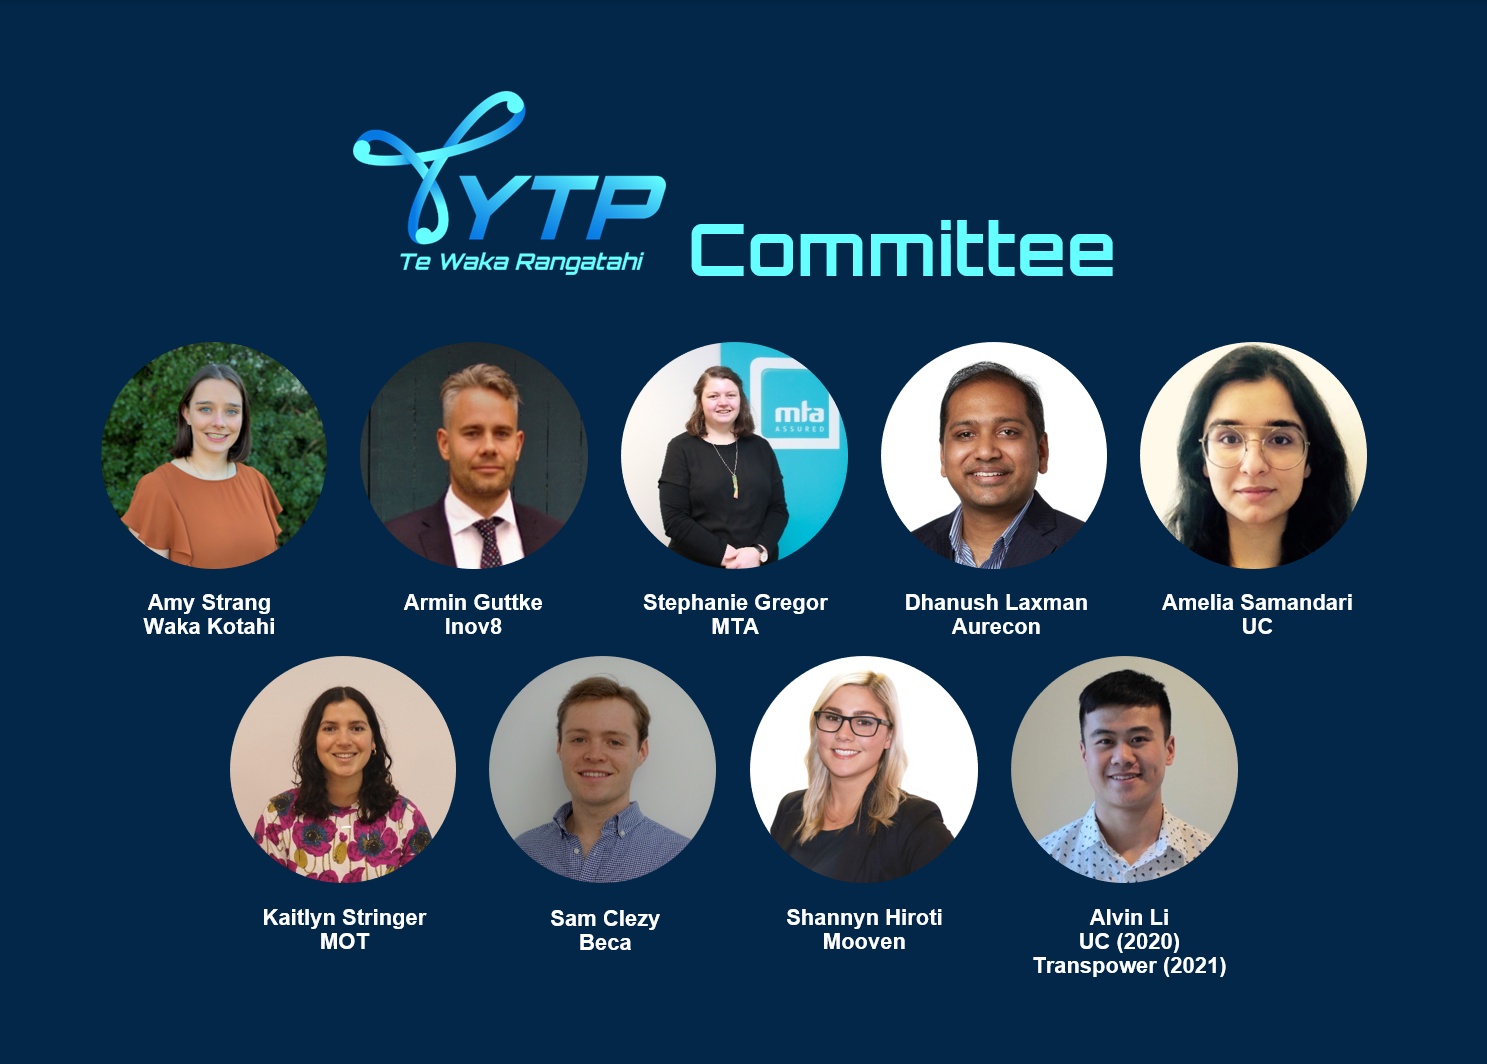 YTP Committee profile pictures